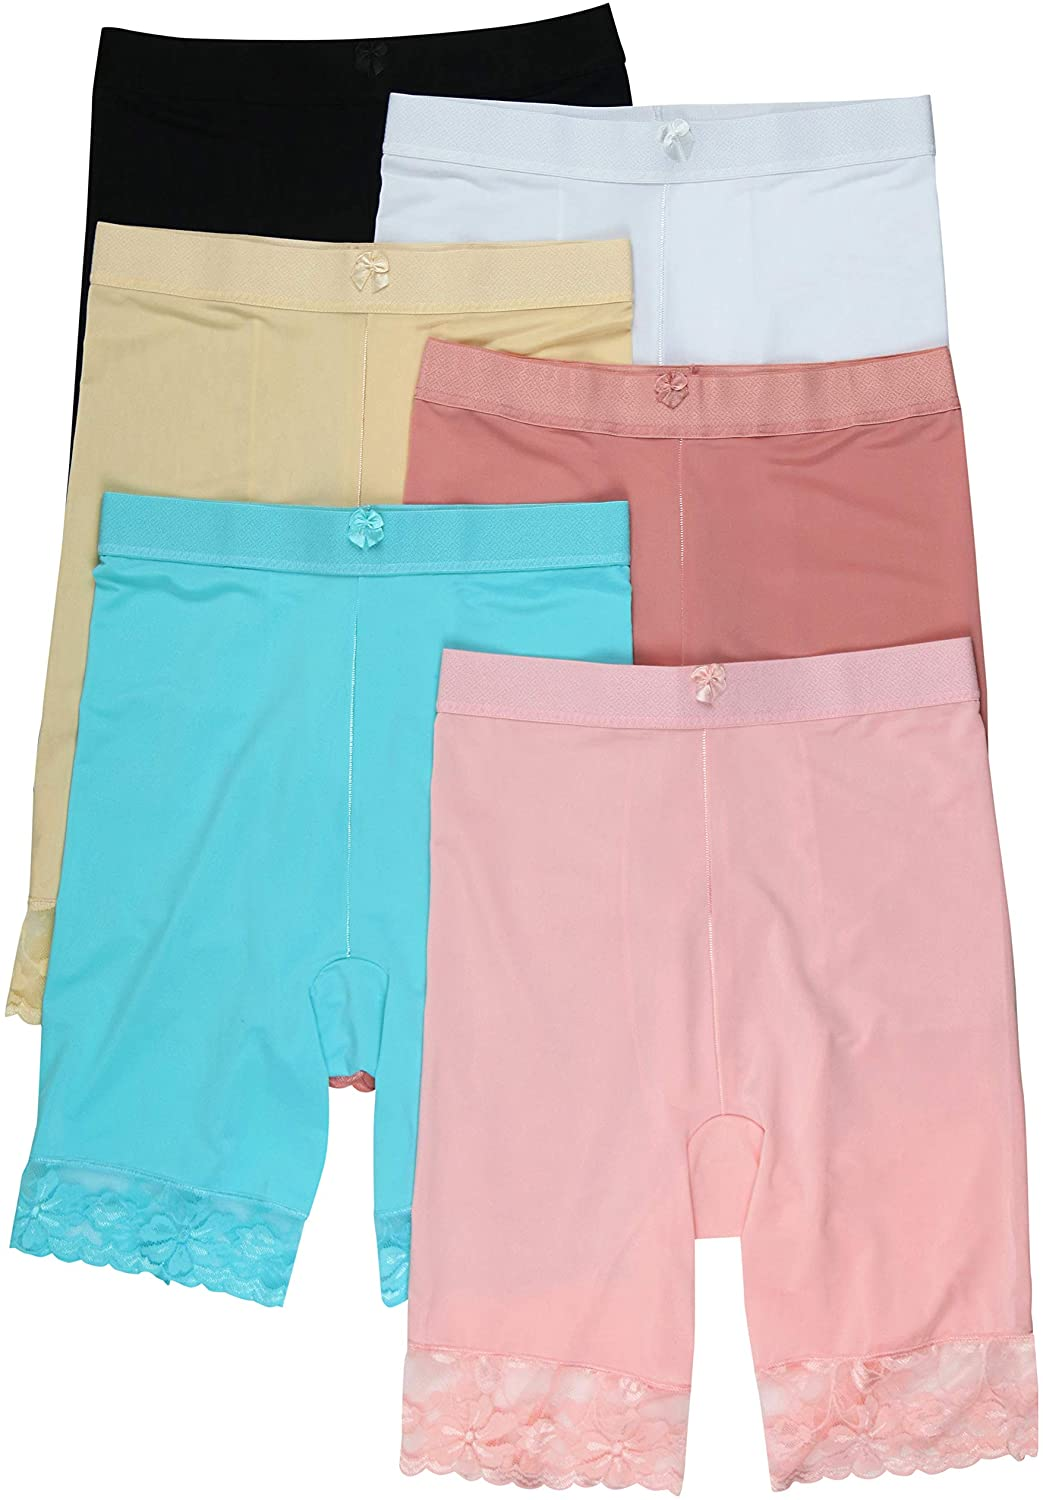 ToBeInStyle Girl's Pack of 6 Seamless Boyshorts